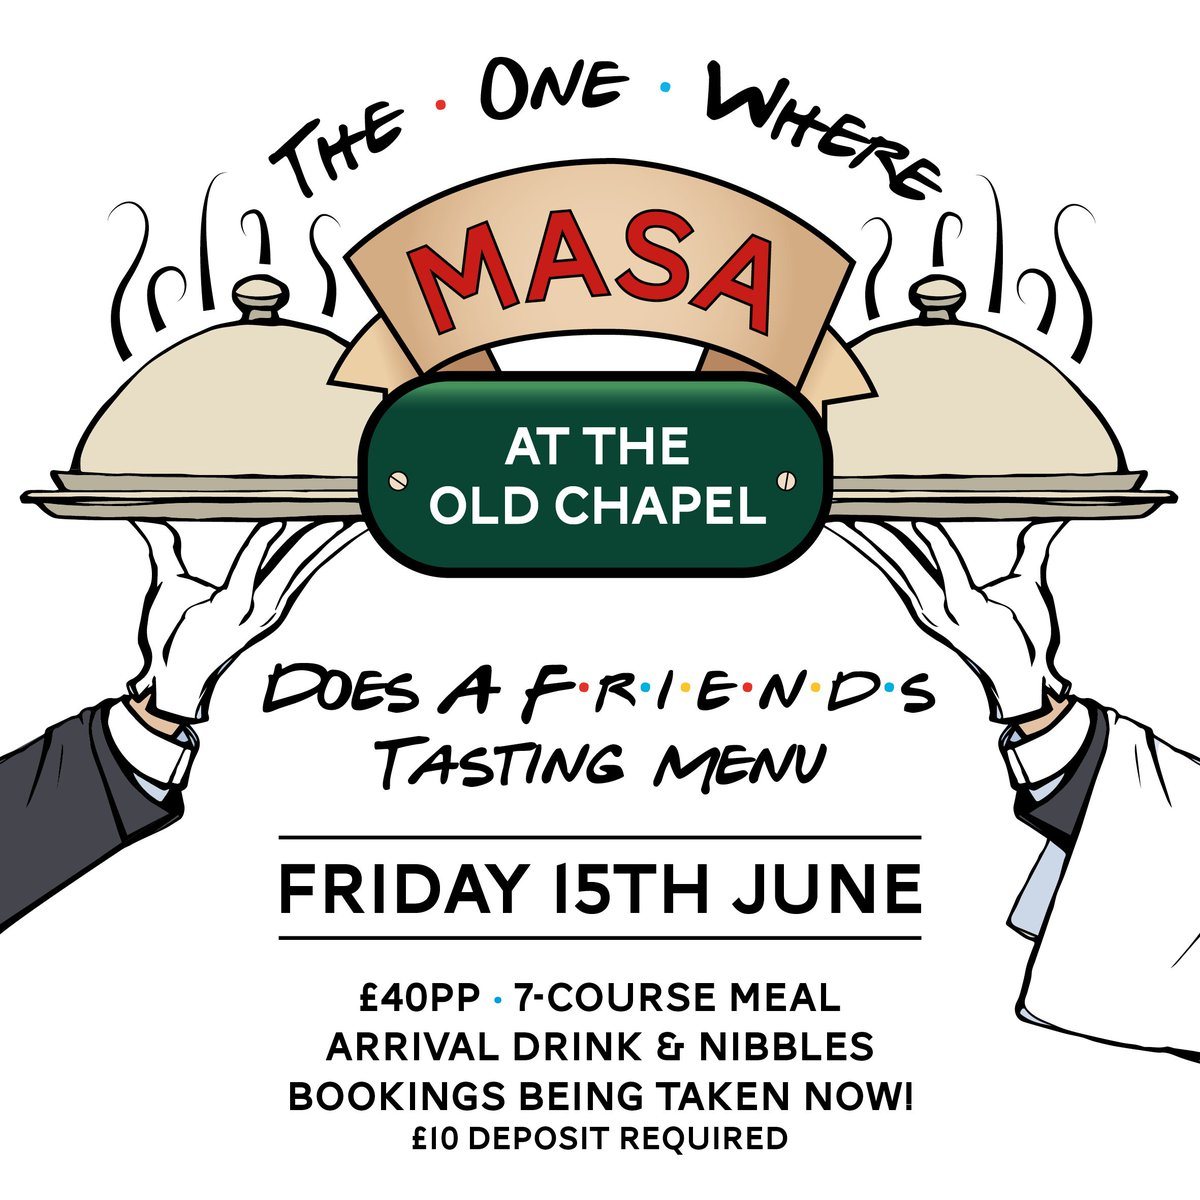 Limited availability for this incredible 7 course tasting menu. Book Now while you can!